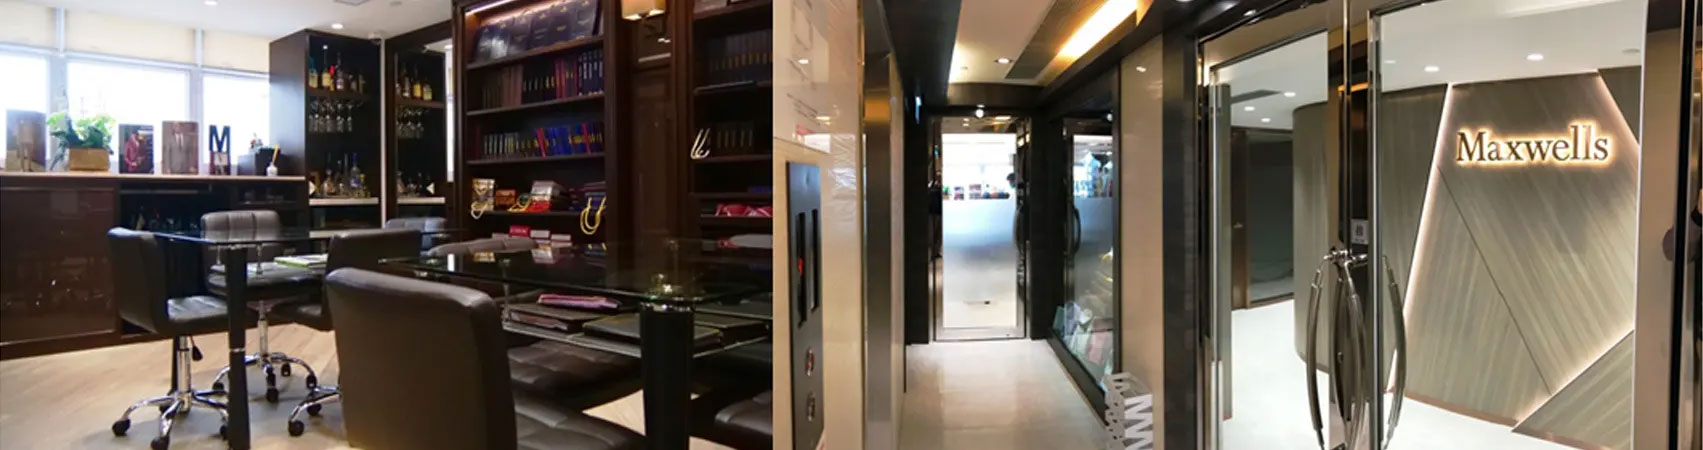 Maxwell's Clothiers Schedule a Store Visit